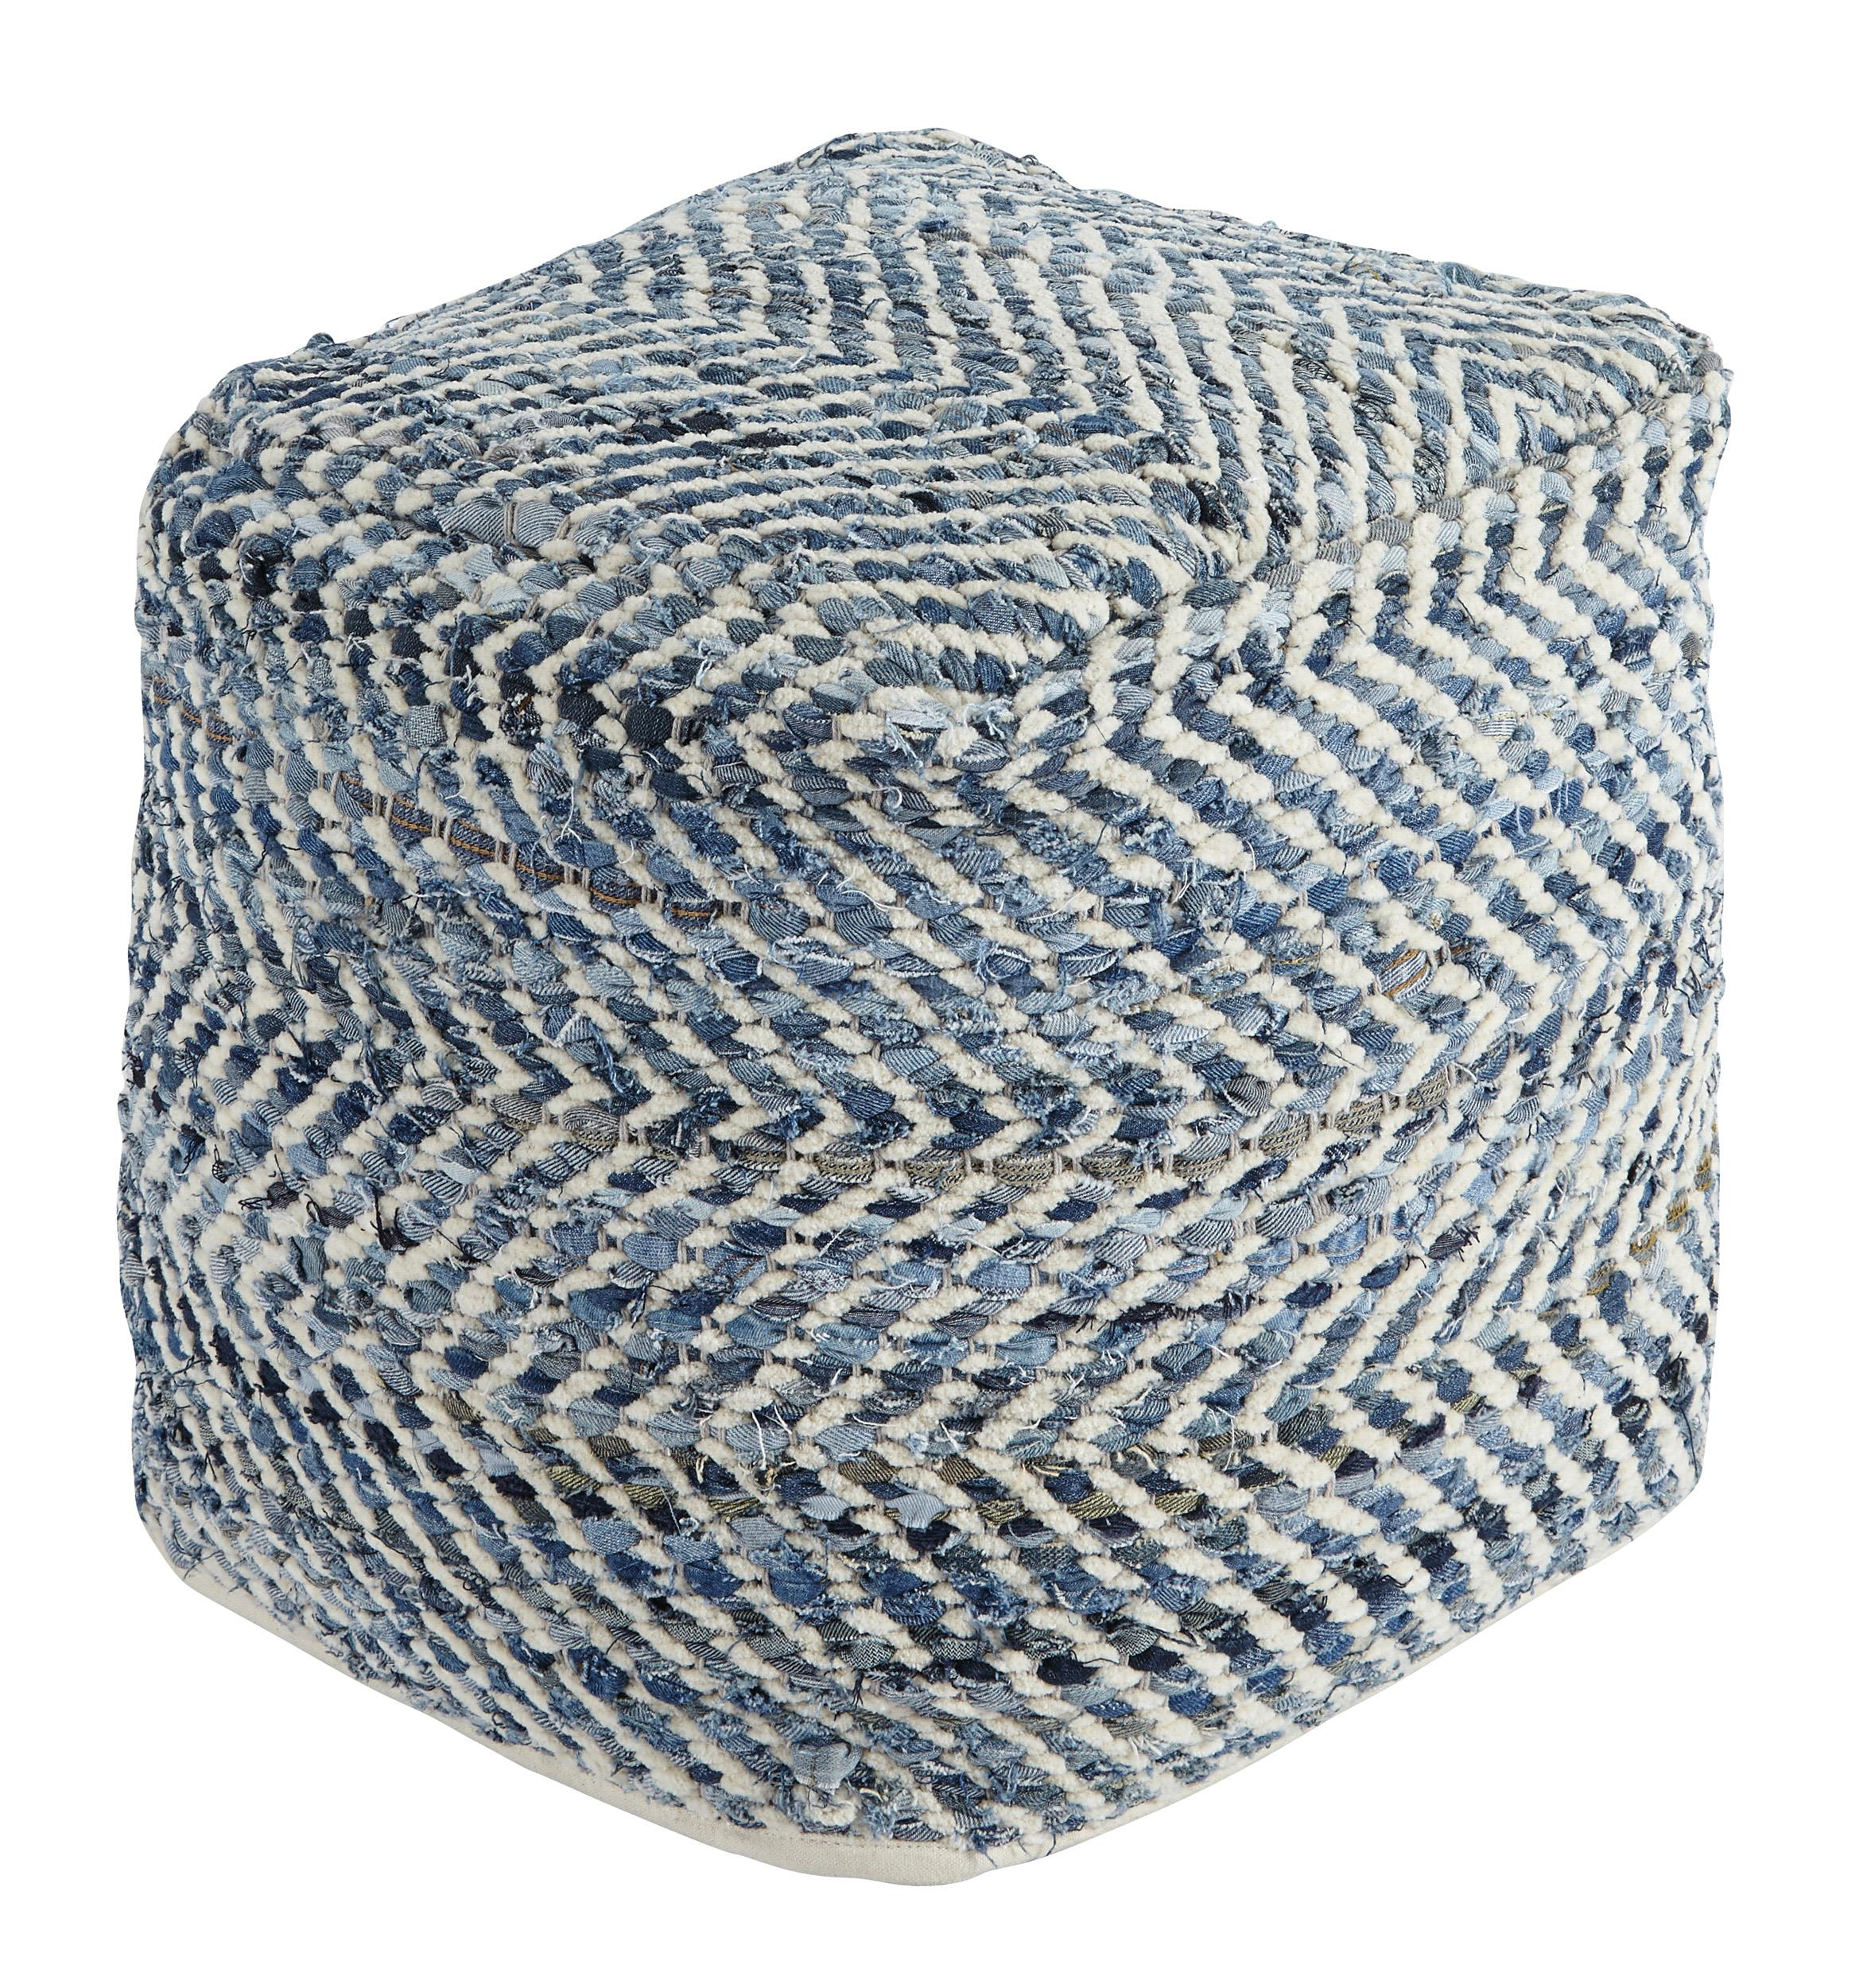 Signature Design by Ashley Poufs Chevron - Blue Pouf - Item Number: A1000445